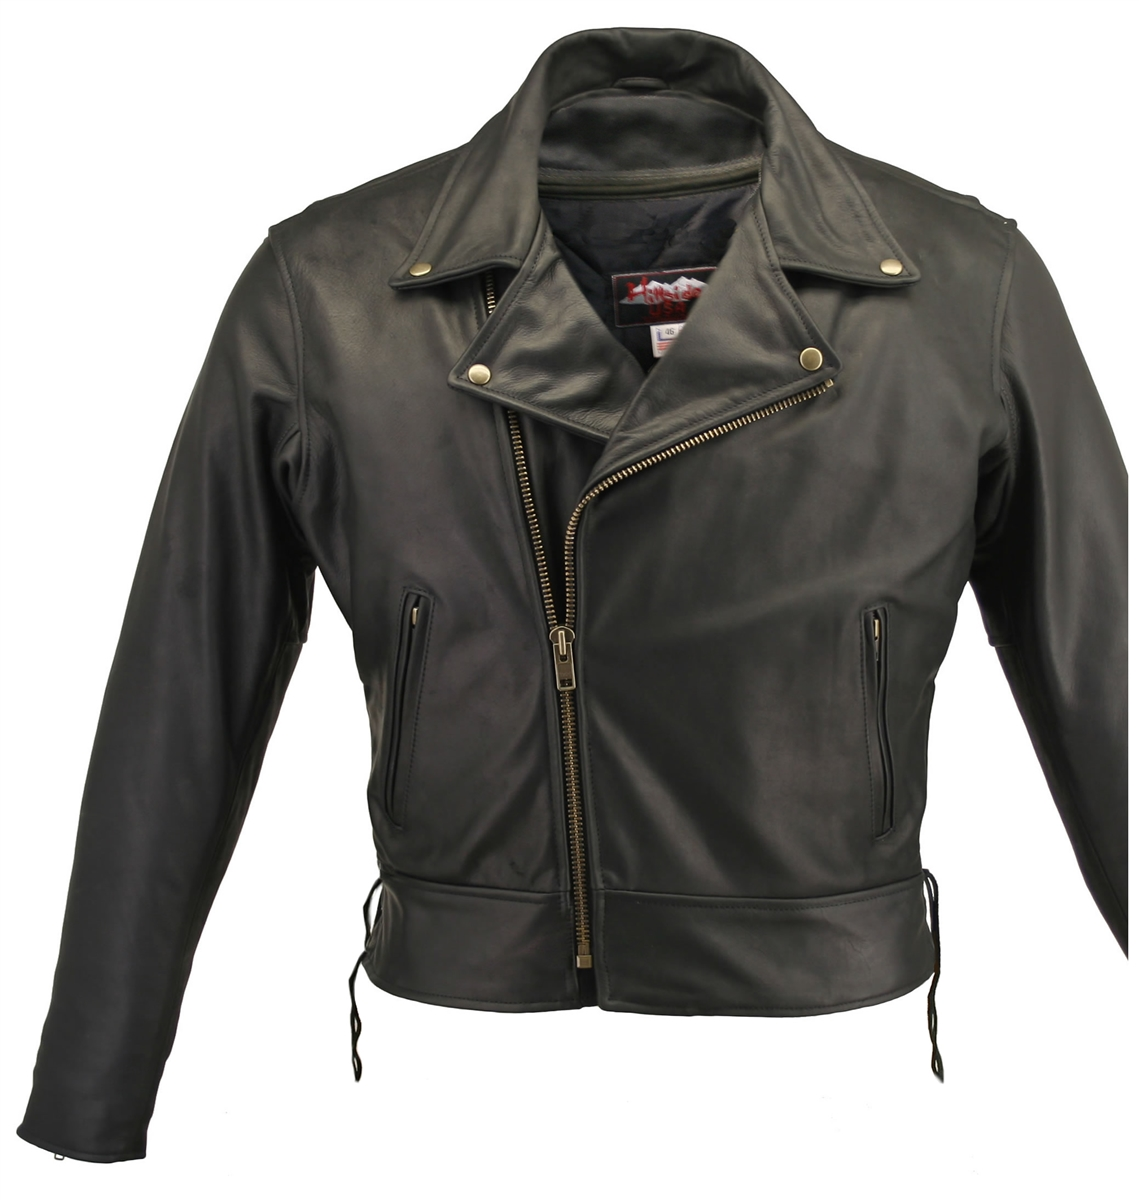 For winter biking, a classic jacket like The Beltless Biker Jacket with side laces, will allow you to adjust the jacket to fit snugly against the upper body. Of course, being able to fully zip up with YKK zipper only adds to your protection from the wind.